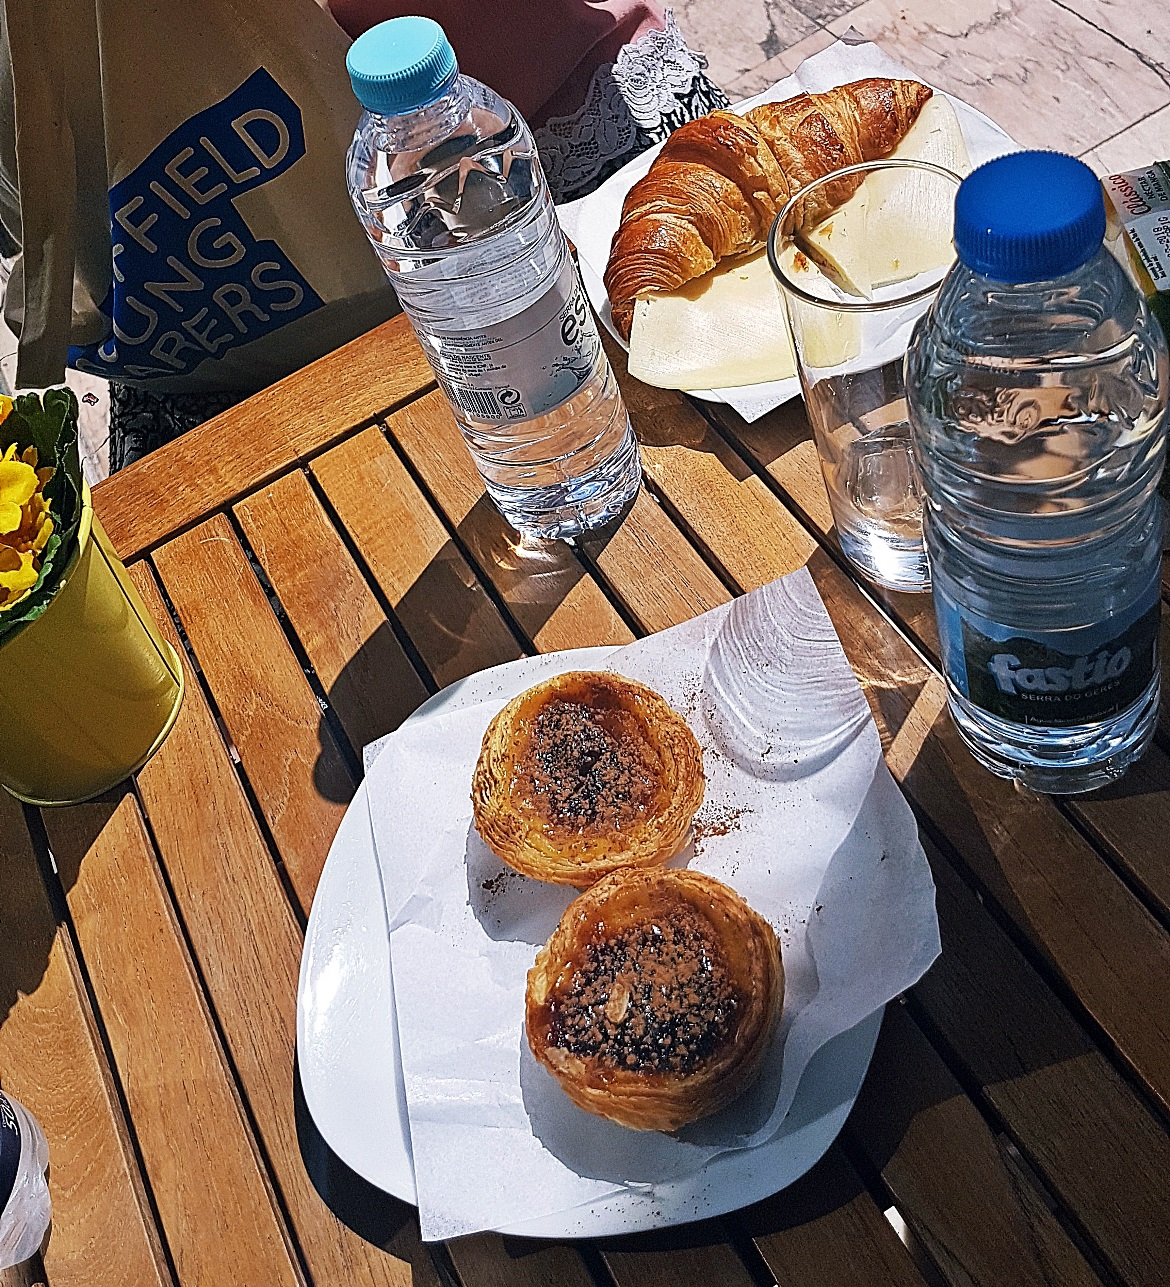 Fresh pastries at Arts Cafe - Food and Drink in Lisbon, review by BeckyBecky Blogs